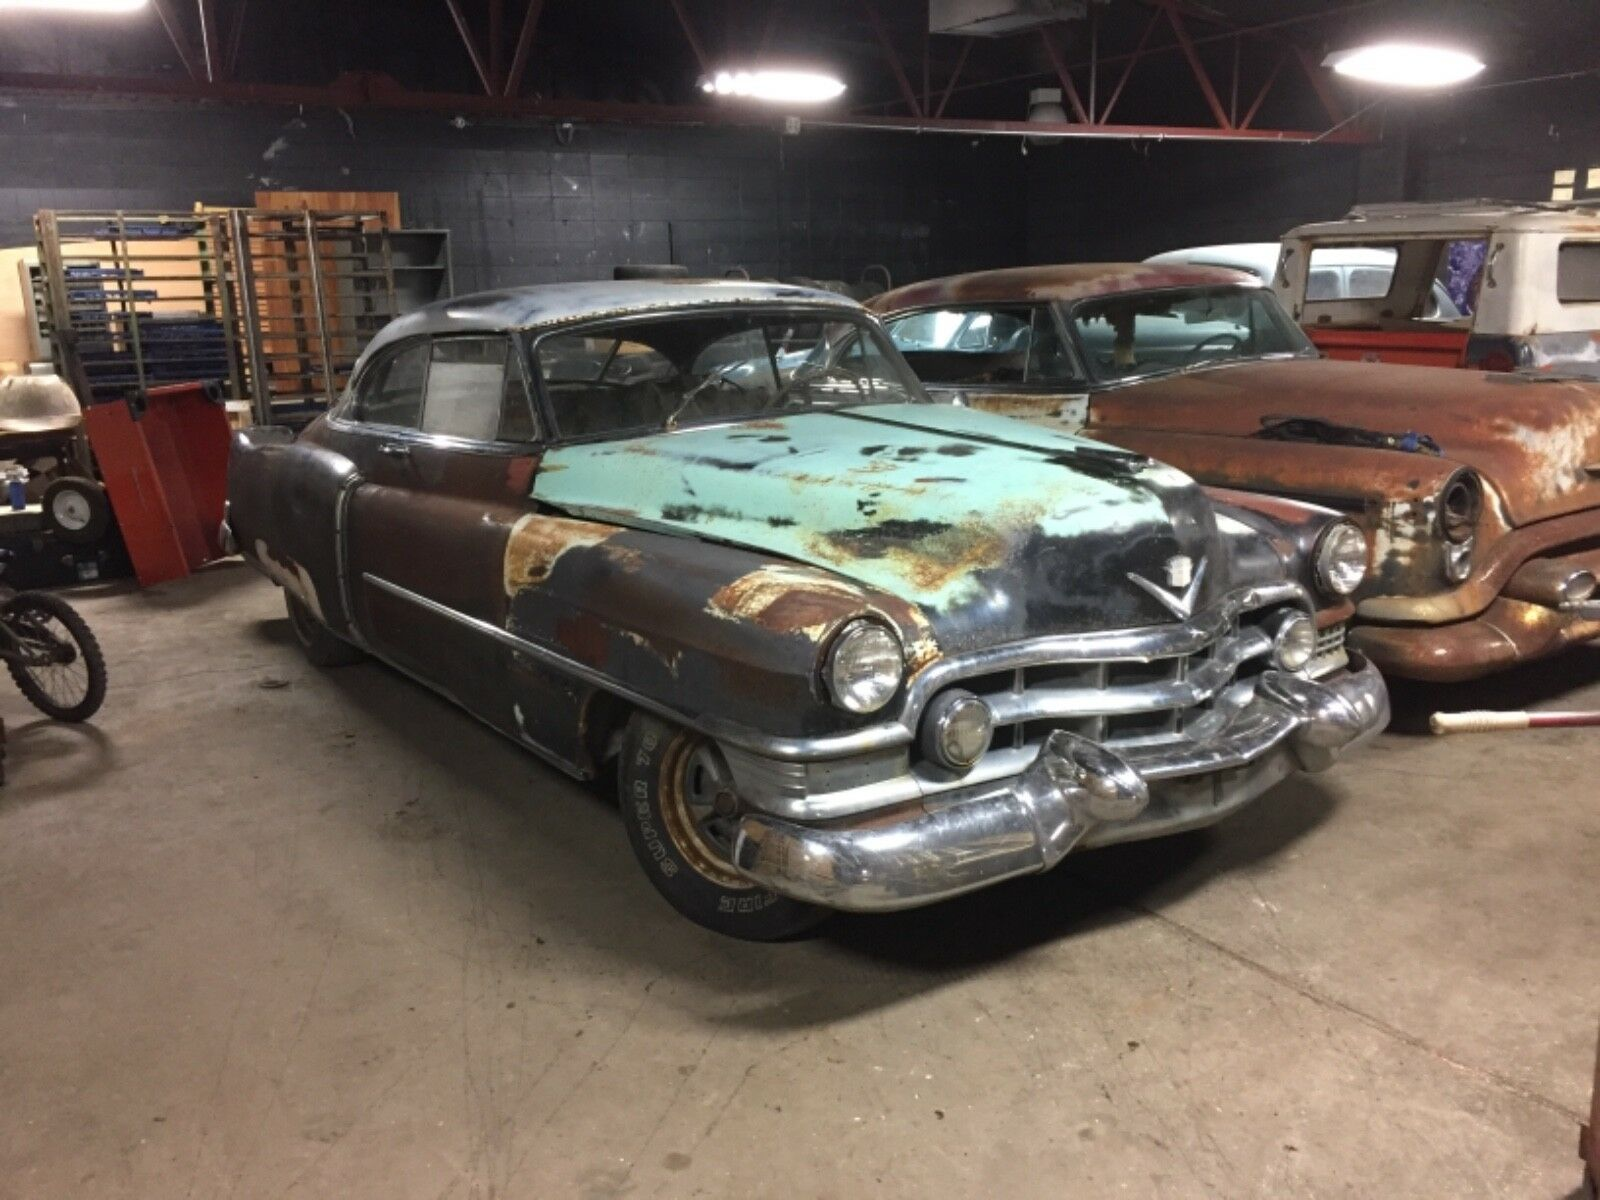 1951 Cadillac DeVille Coupe DeVille 1951 Cadillac CoupeDeVille, Rat Rod, Classic, Collector, Barn Find